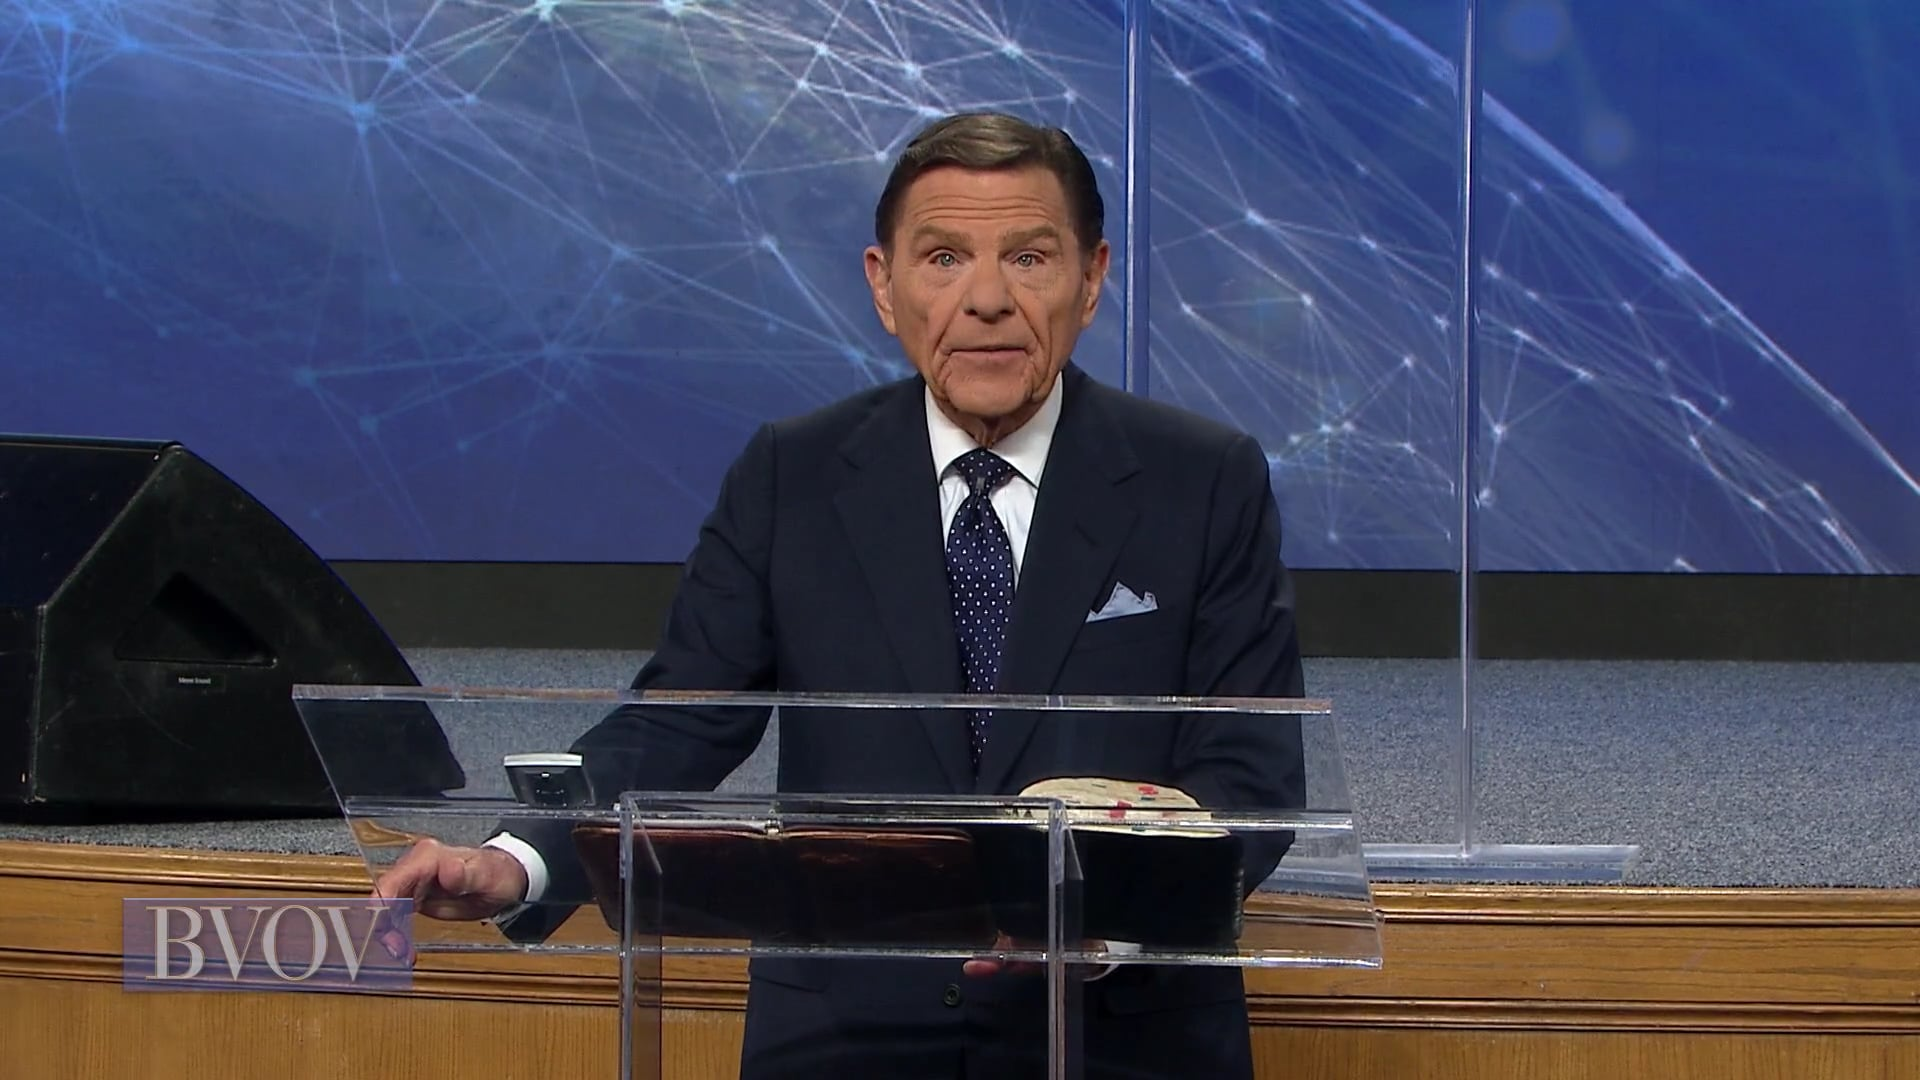 Healing belongs to the believer! Watch Kenneth Copeland on Believer's Voice of Victory as he shares about the power of Psalm 91 for protection and healing. Learn how Kenneth and Gloria pray this Psalm for everyday protection and divine health. You can do the same in your own life!